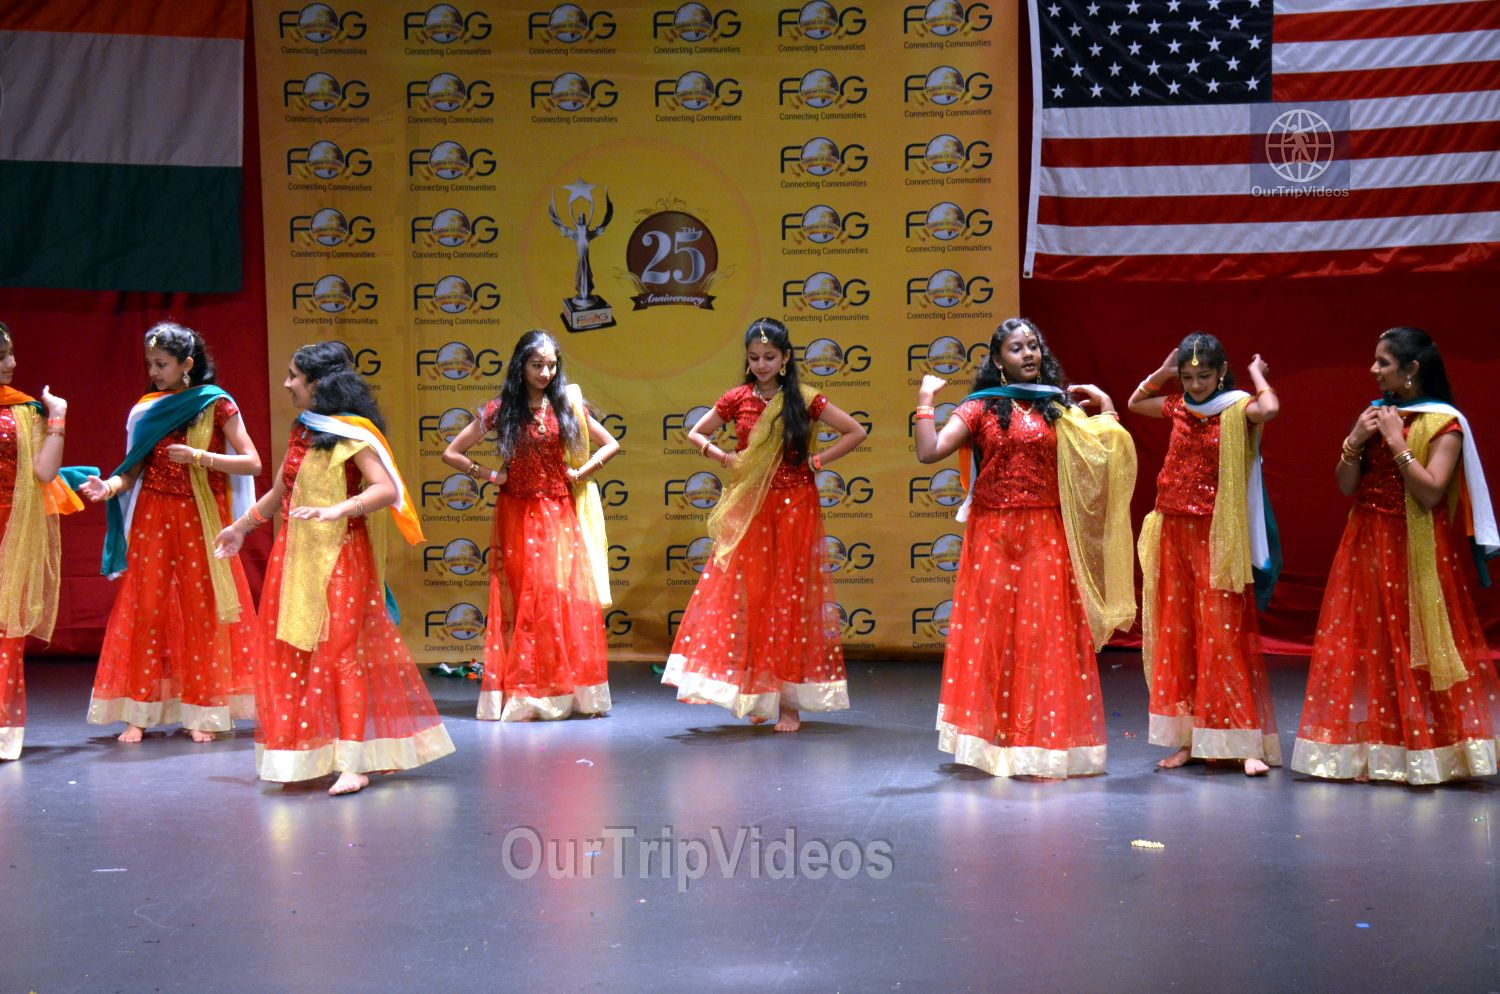 FOG Republic Day celebration, Santa Clara, CA, USA - Picture 17 of 25